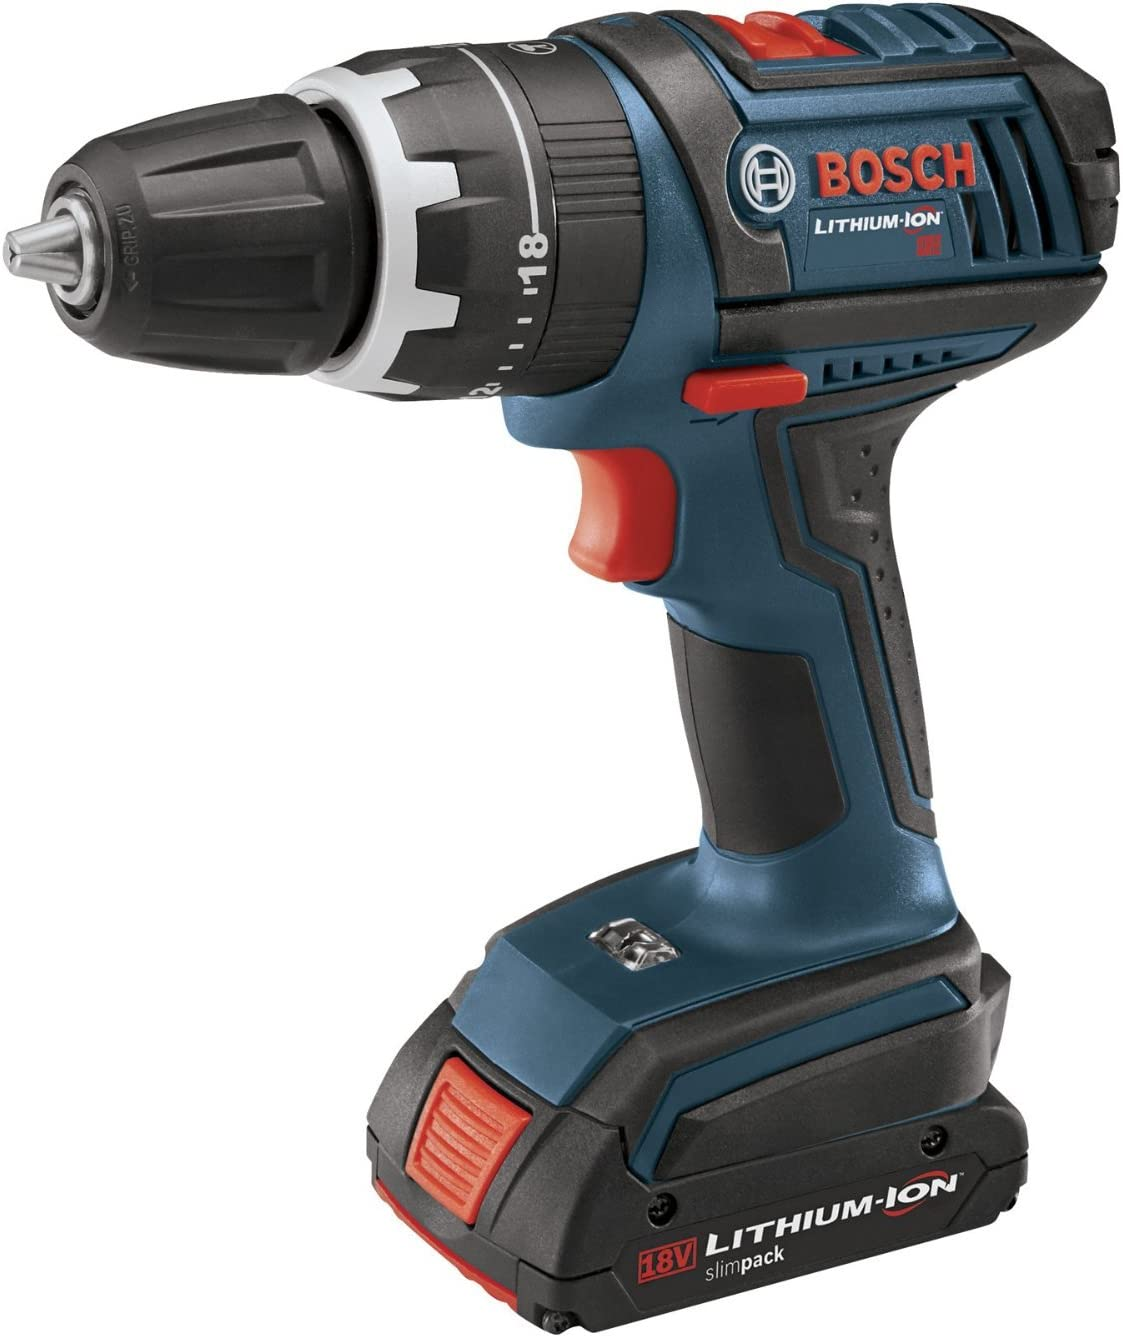 Bosch HDS180-03 18-Volt Lithium-Ion 1 2-Inch Compact Tough Hammer Drill Driver with 2 Batteries, Charger and Case